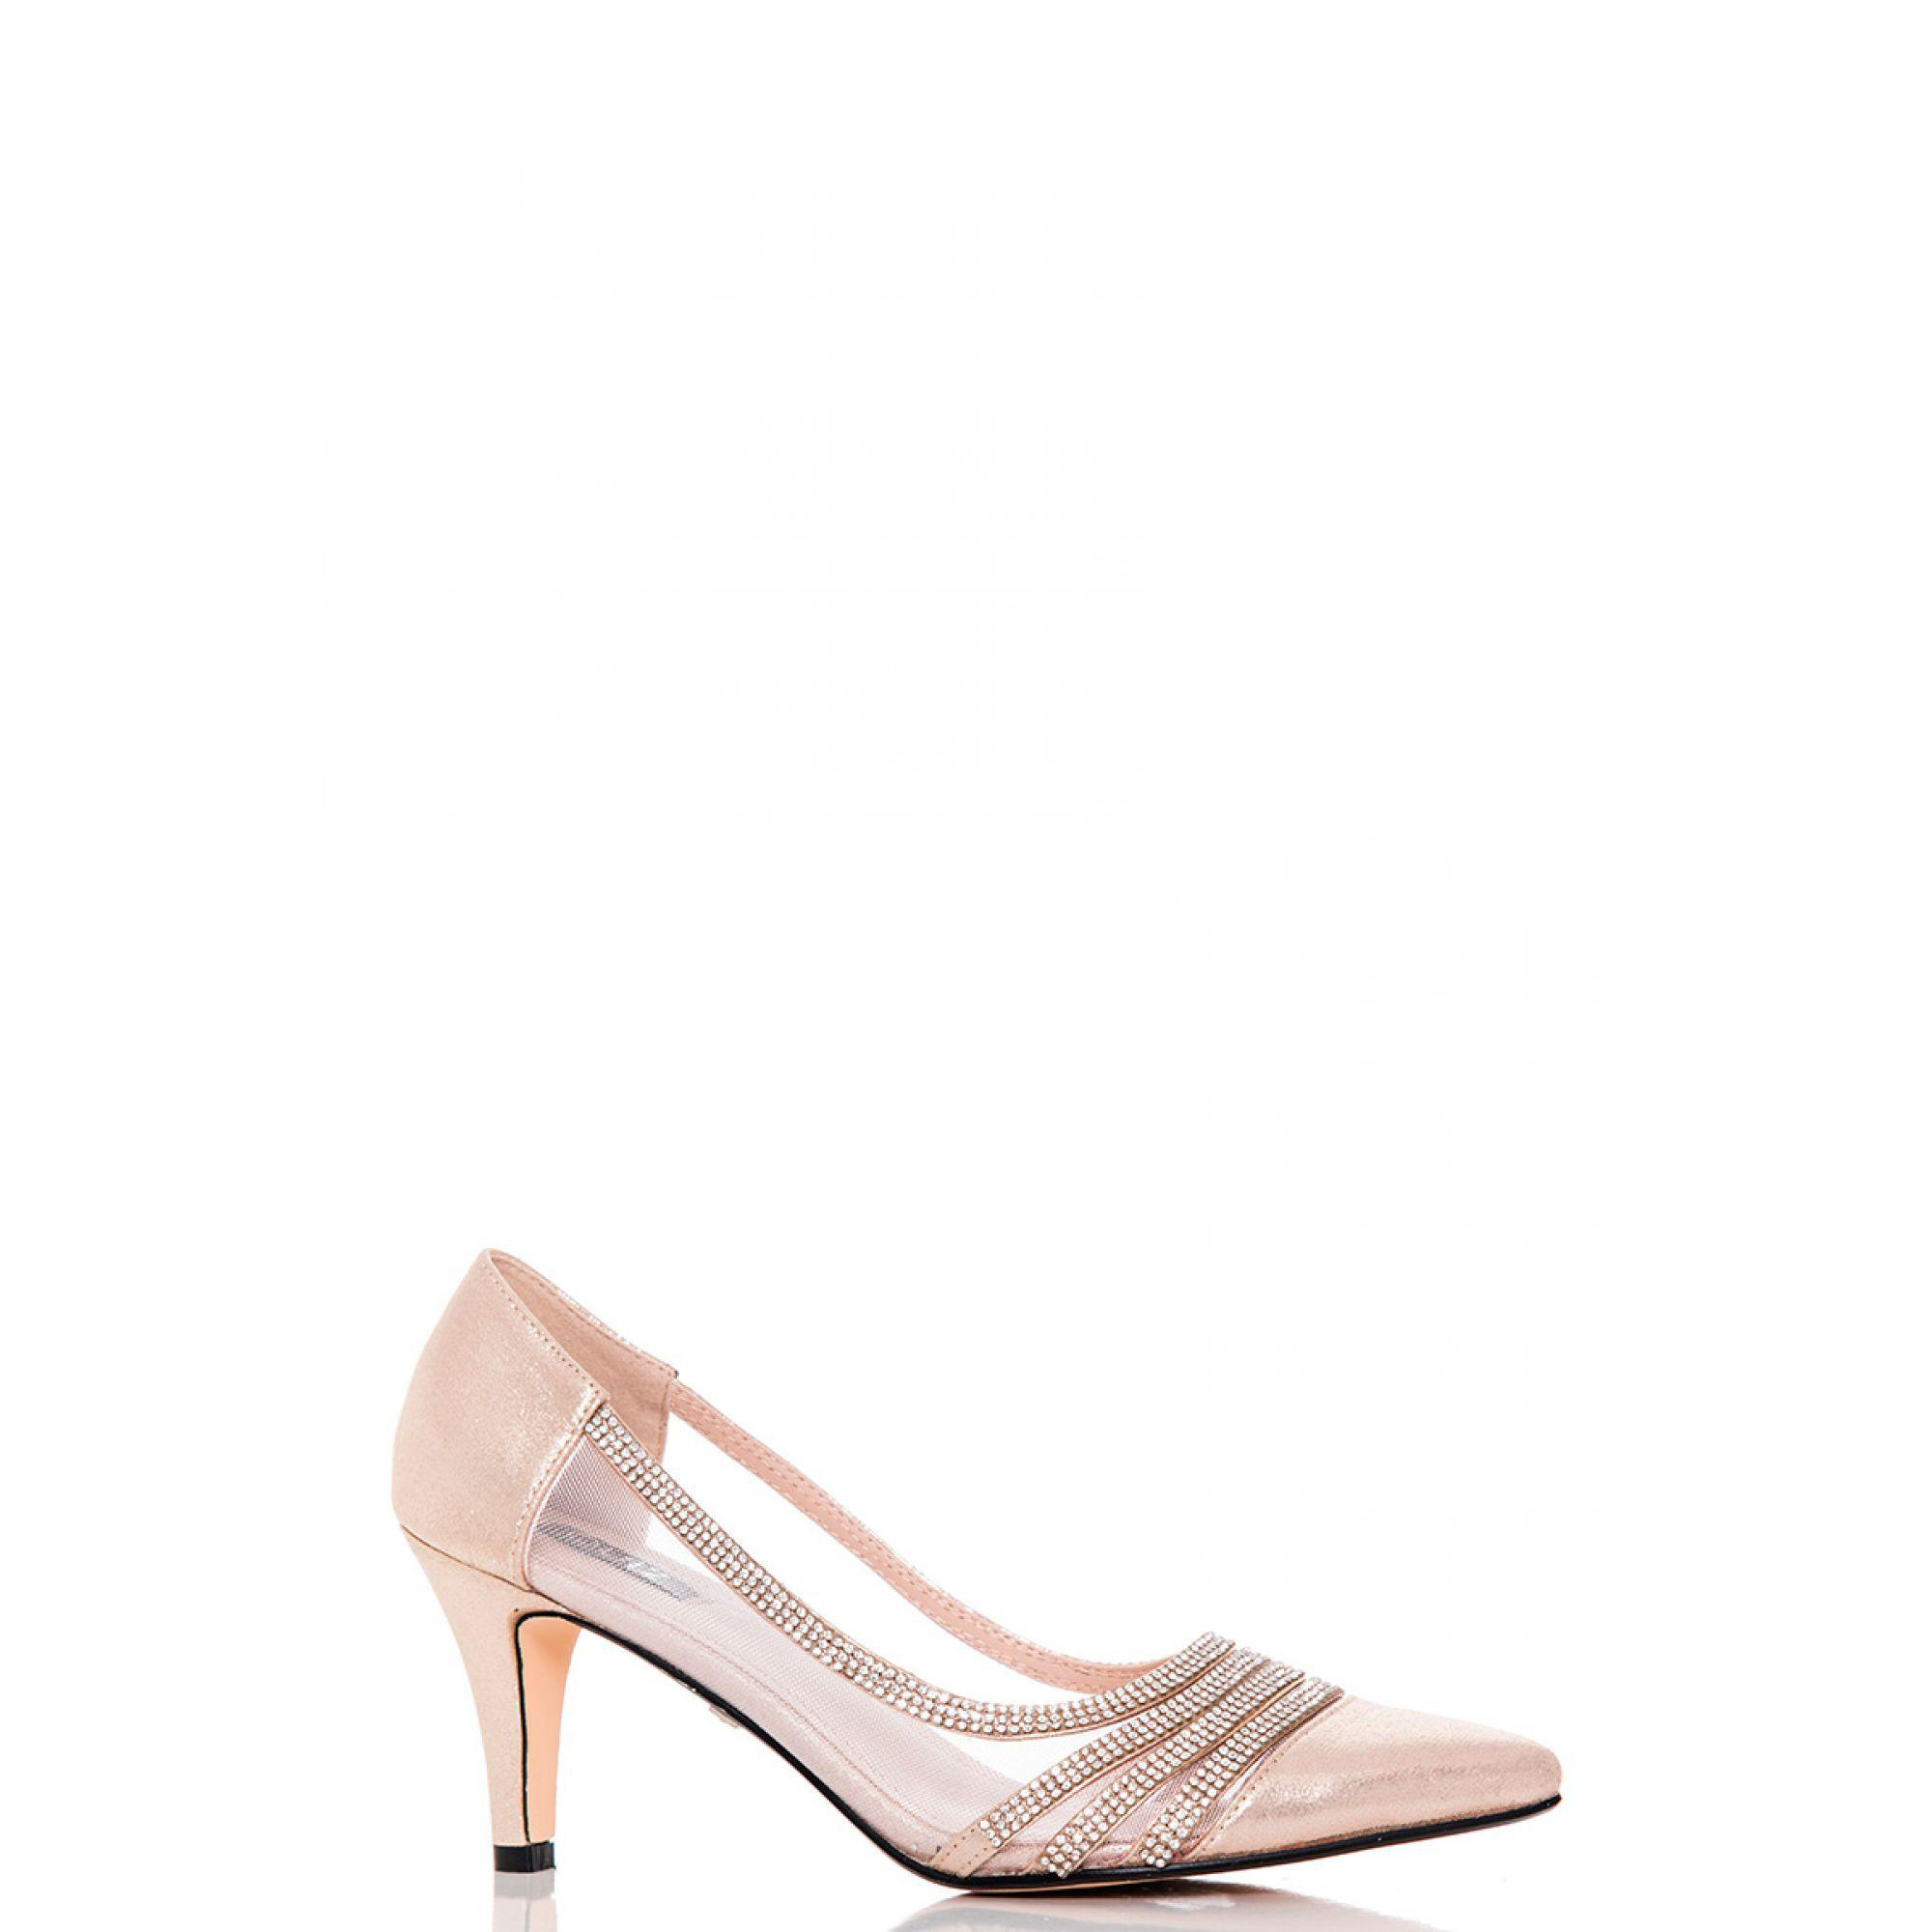 ad1d527a269c6 Quiz. Women s Metallic Gold Shimmer Diamante And Mesh Low Heel Court Shoes